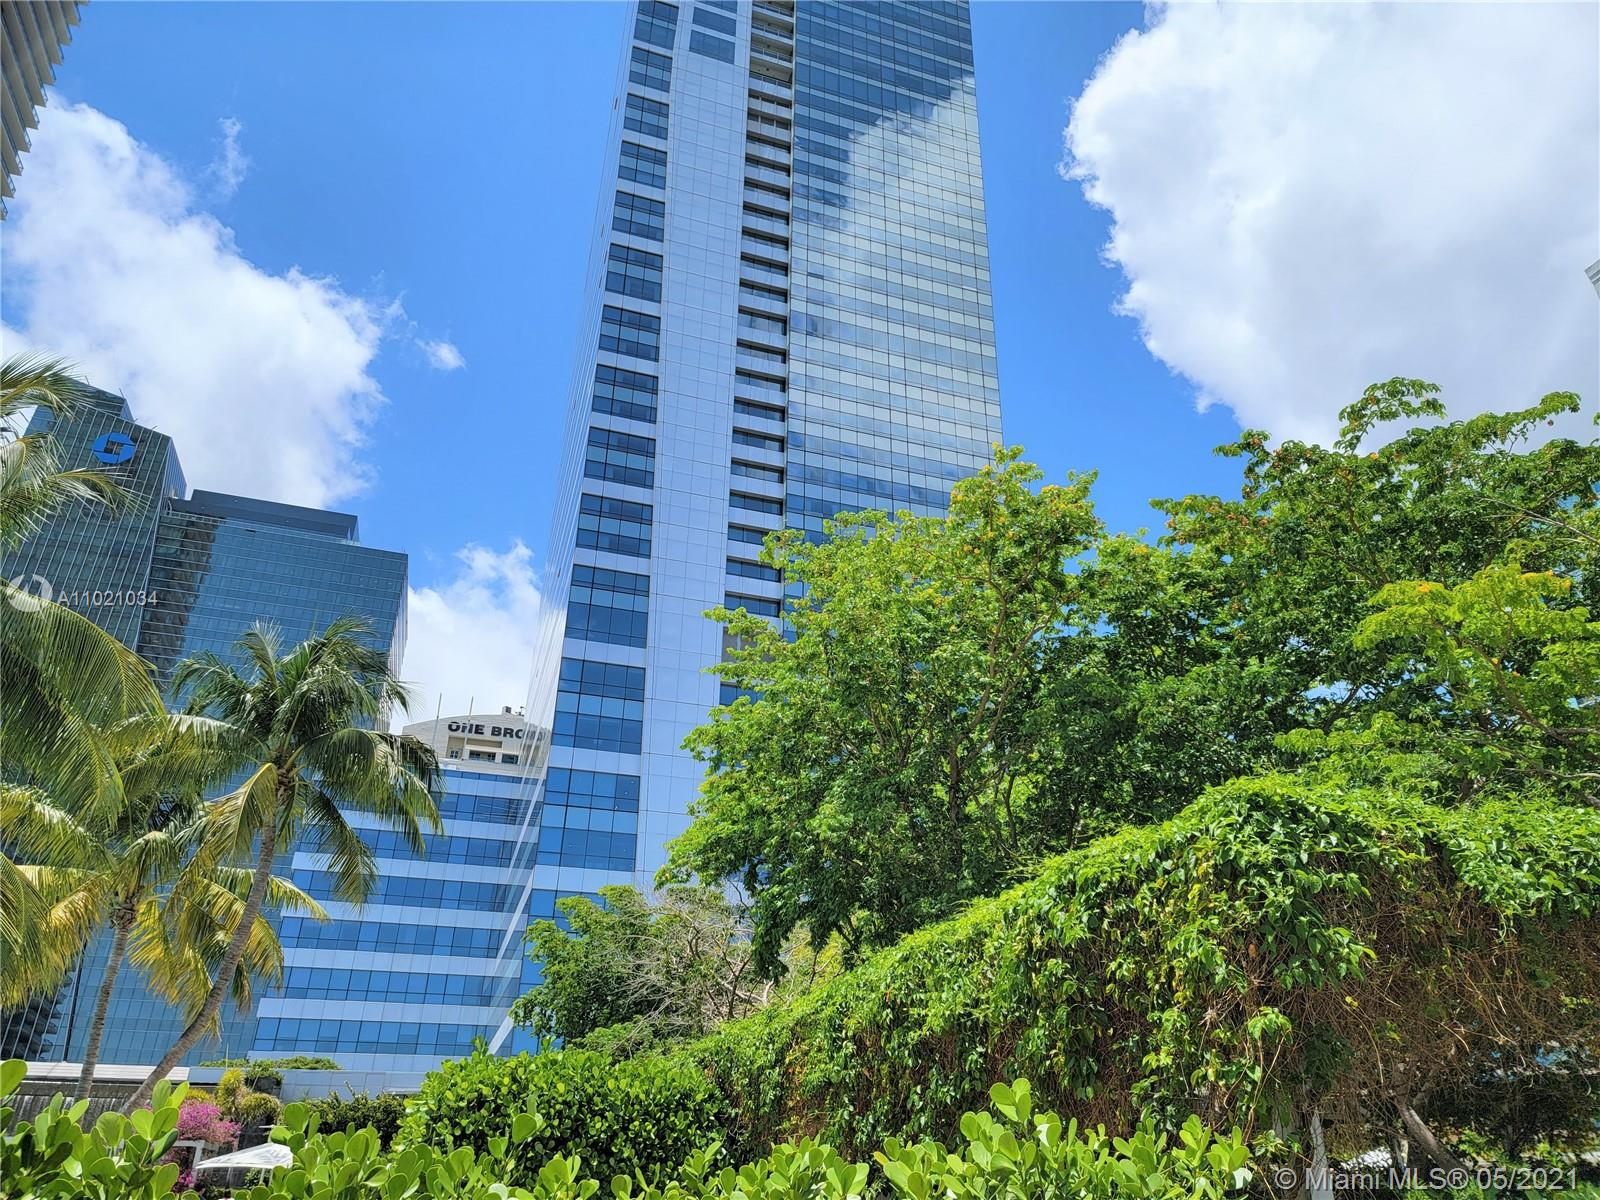 Four Seasons #3308 - 1435 BRICKELL AV #3308, Miami, FL 33131